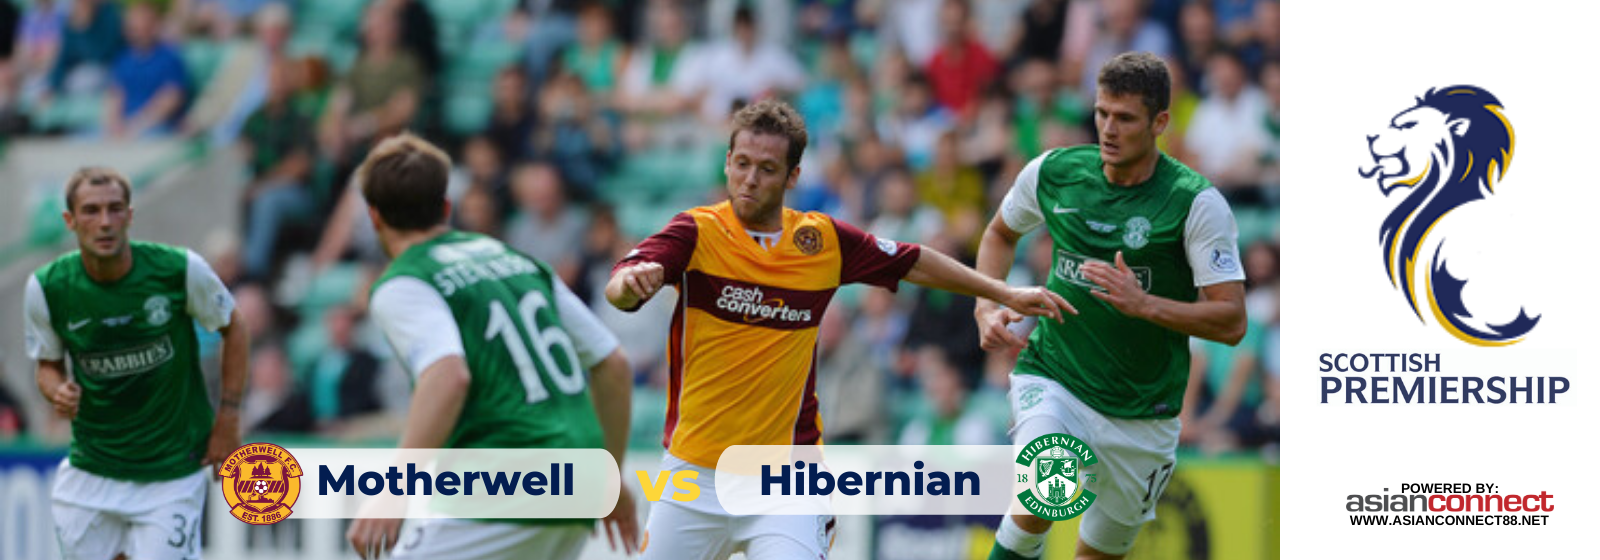 Asianconnect: Motherwell vs Hibernian Odds for January 25, 2020